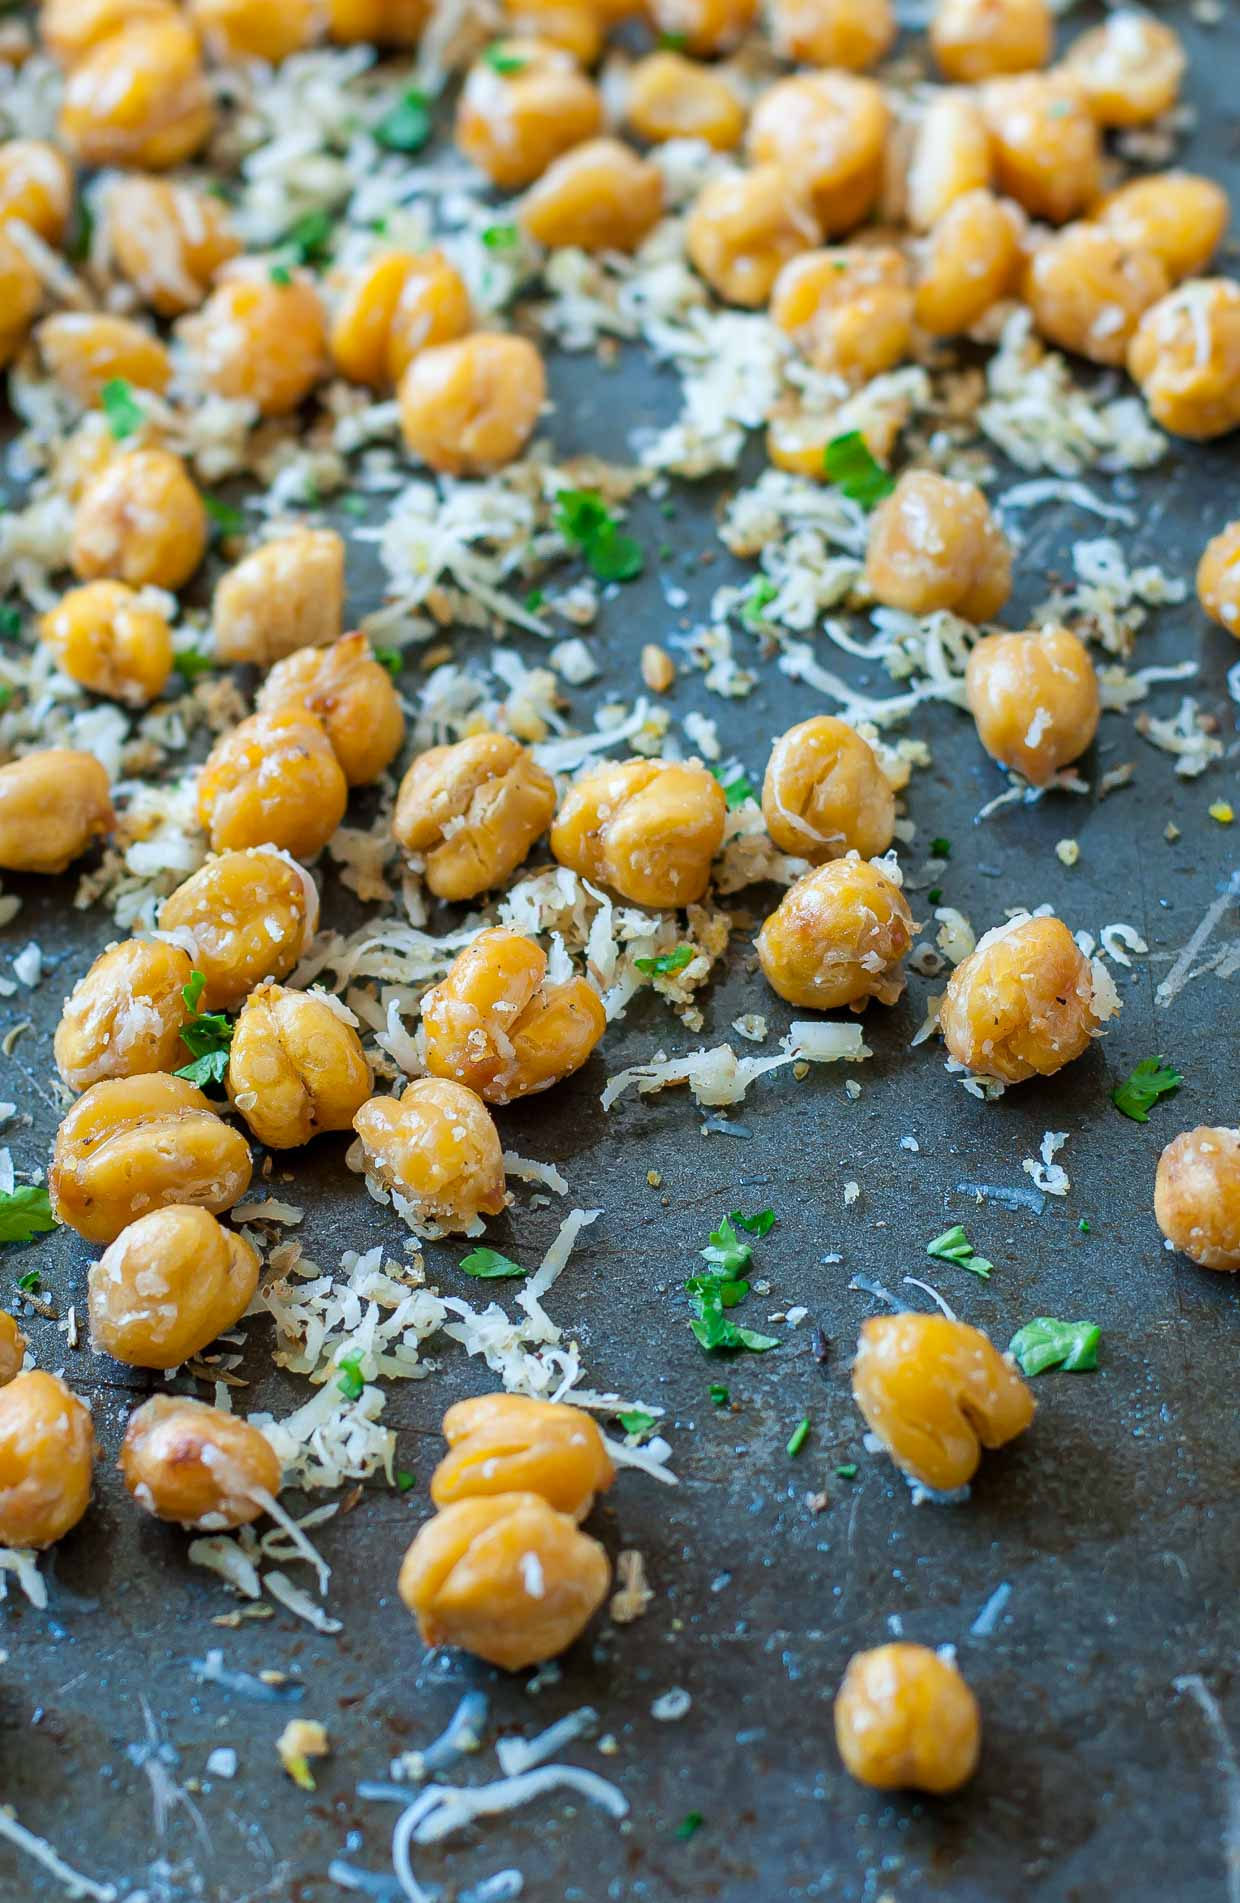 These crispy roasted parmesan chickpeas are a healthy snack loaded with protein, fiber, and a whole lot of deliciousness!